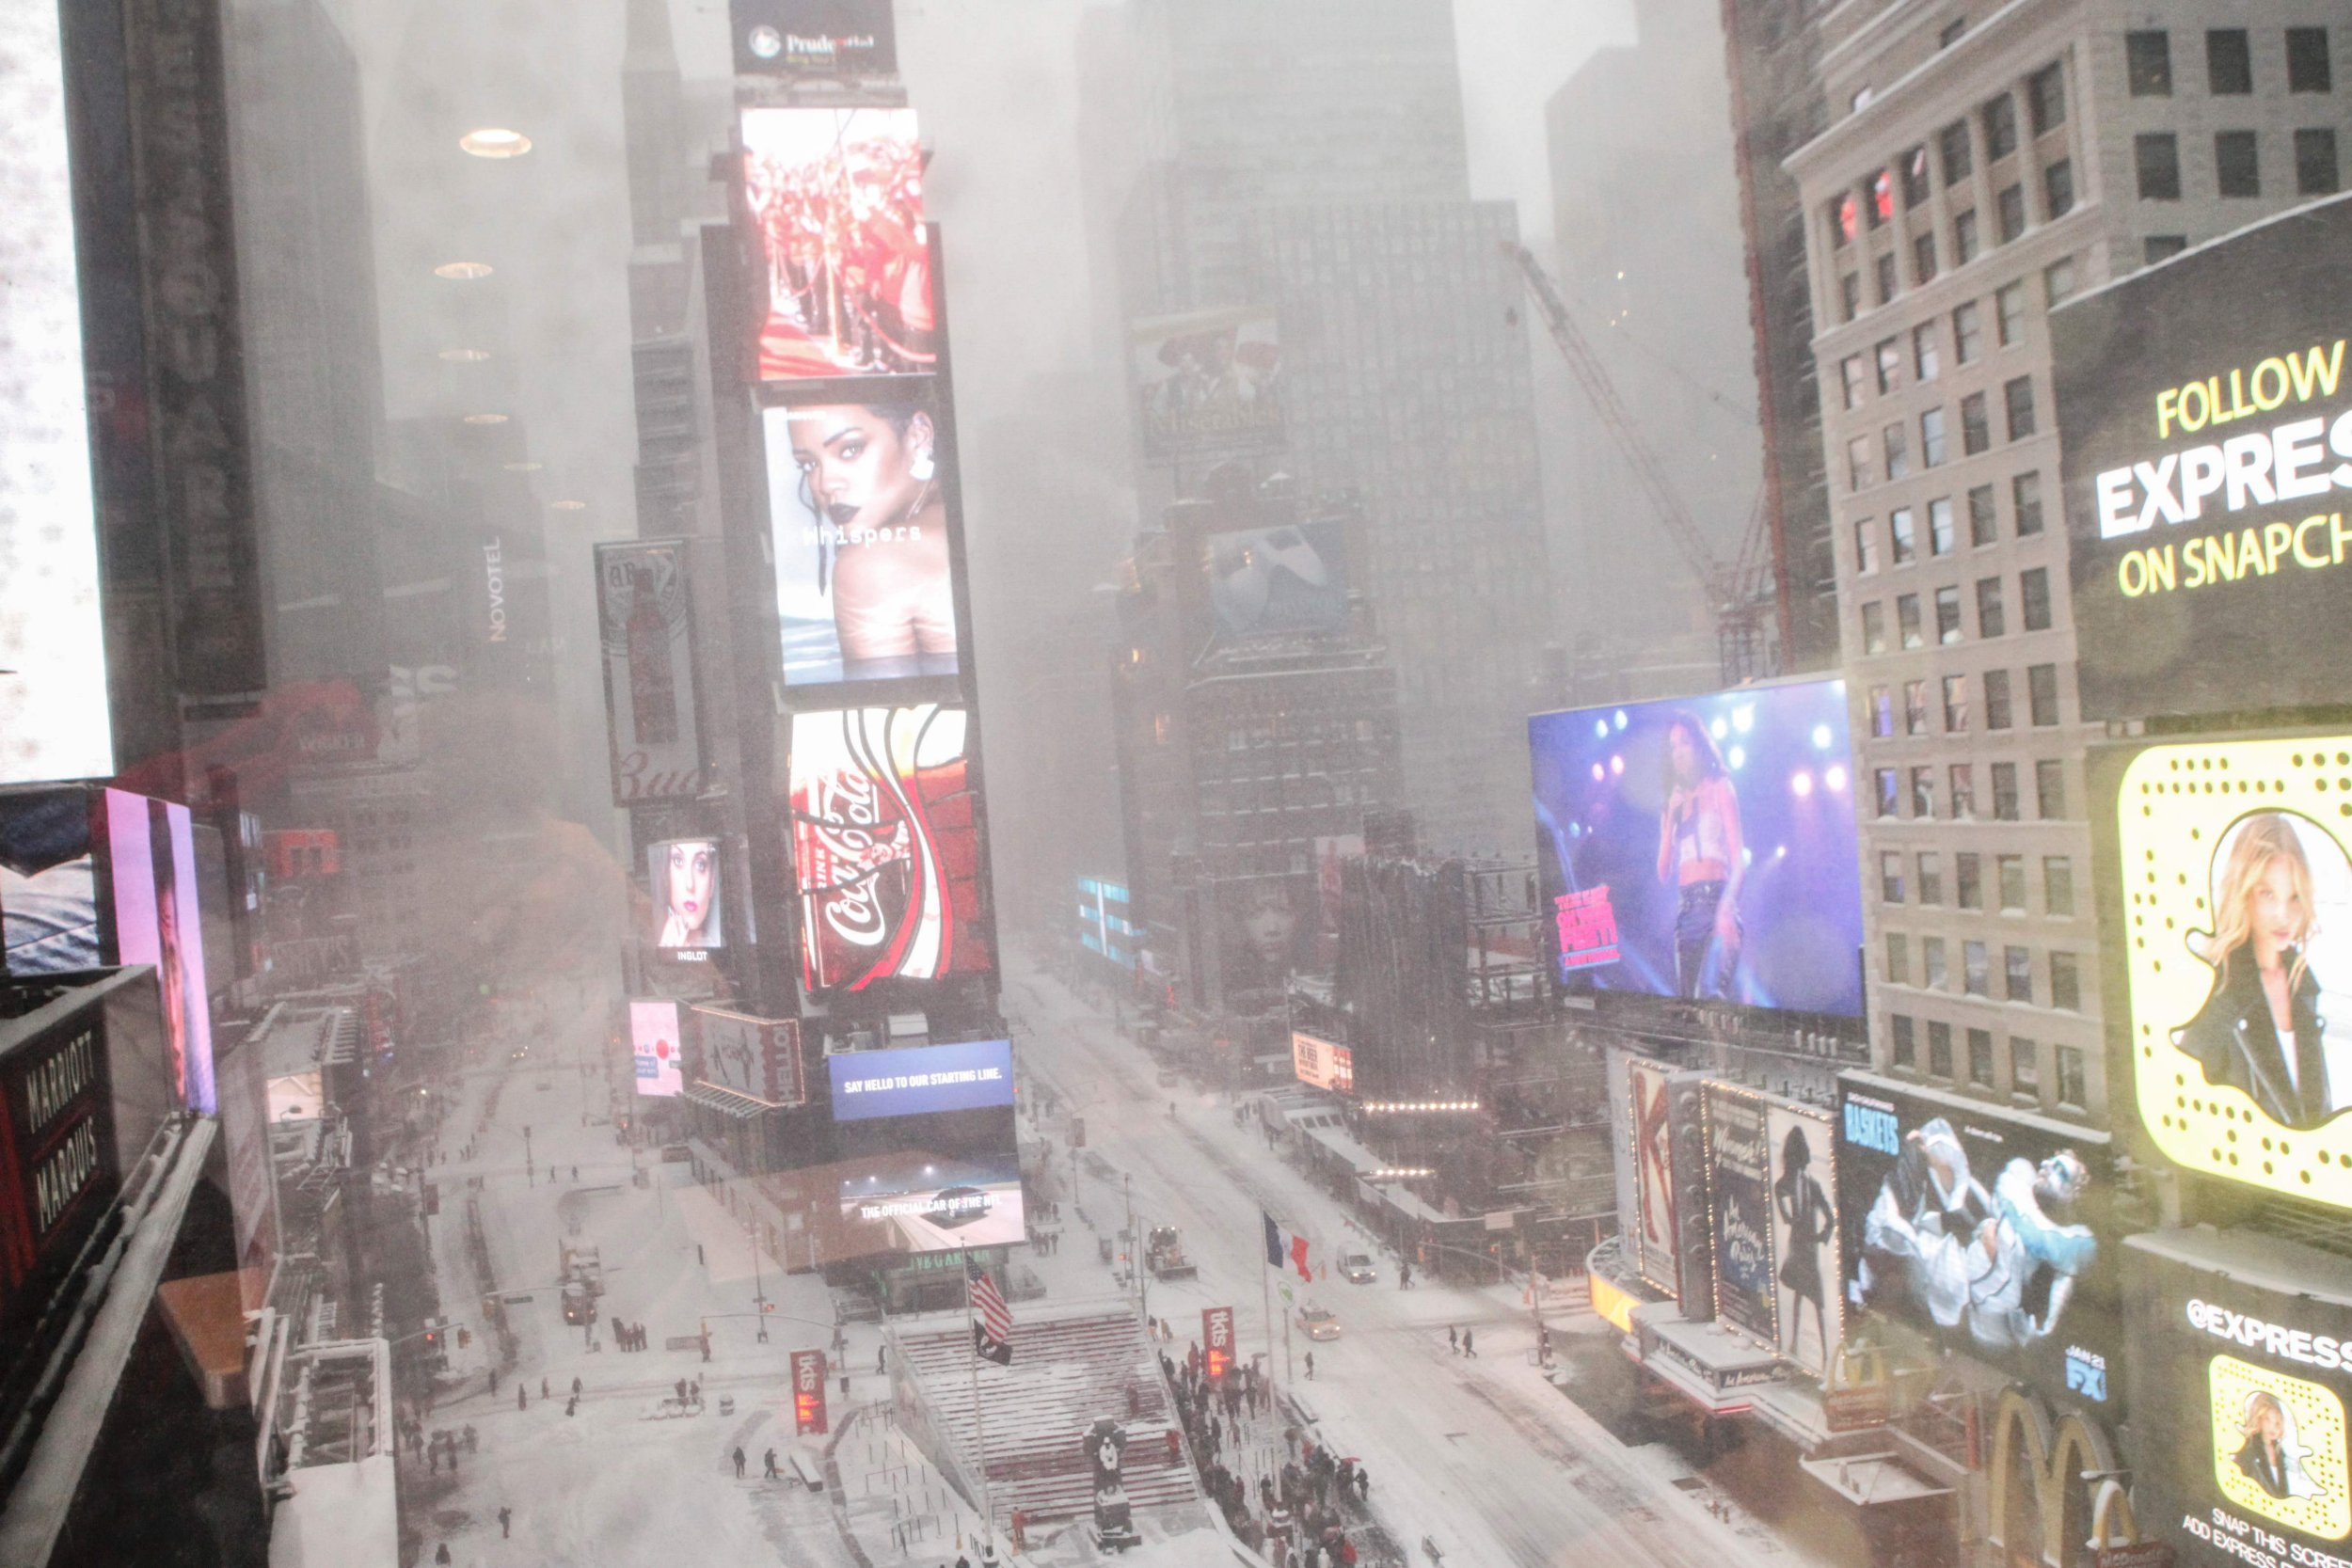 23 most insane pictures of the snowstorm bringing the entire US East Coast to a standstill